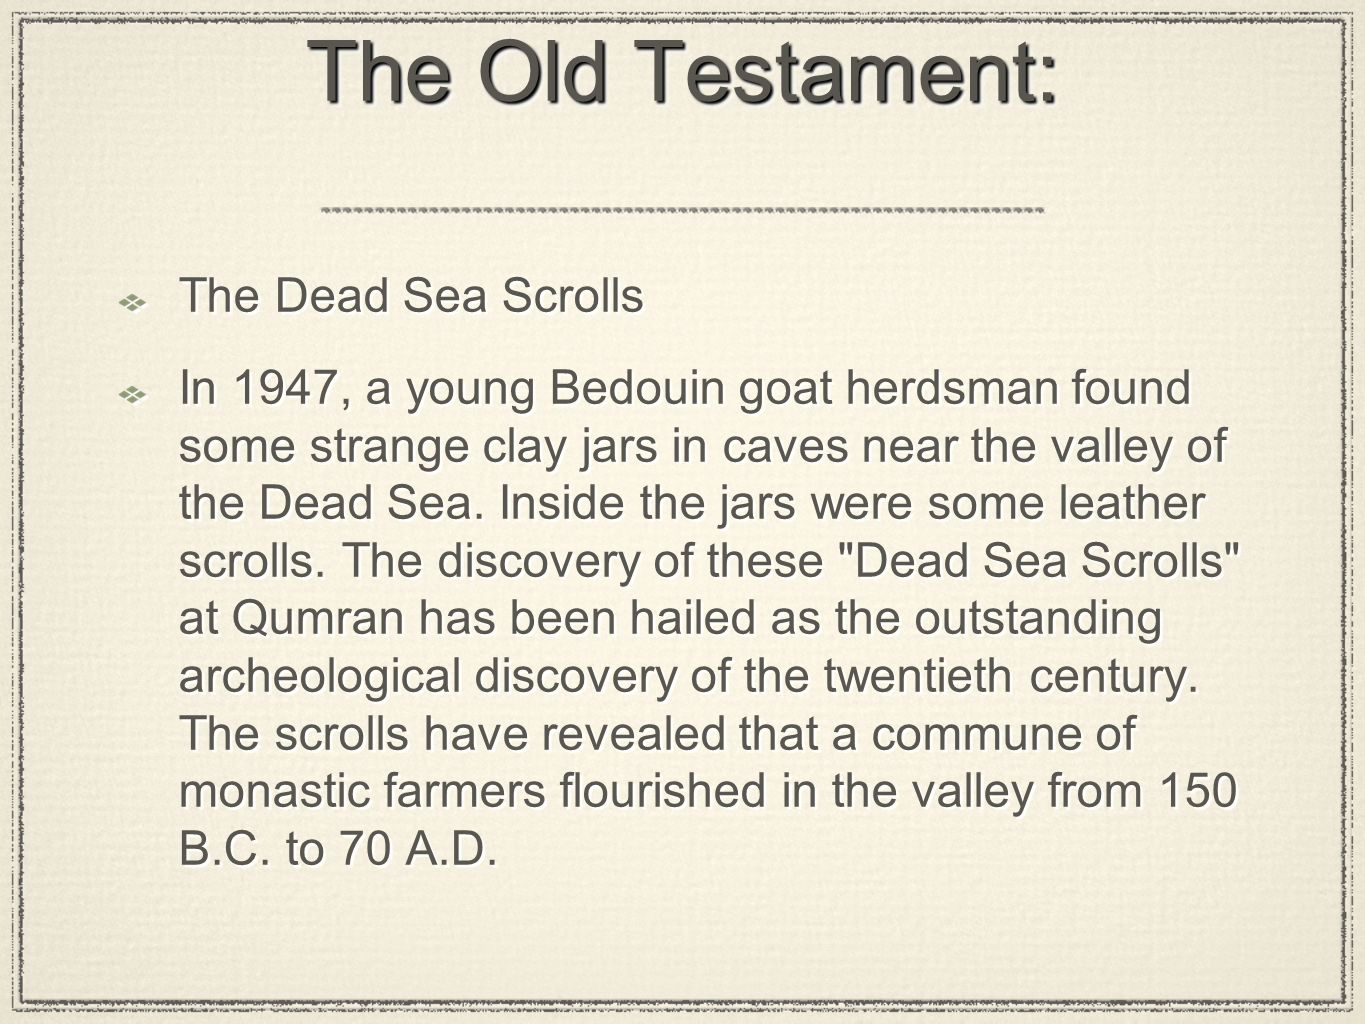 The Old Testament: The Dead Sea Scrolls